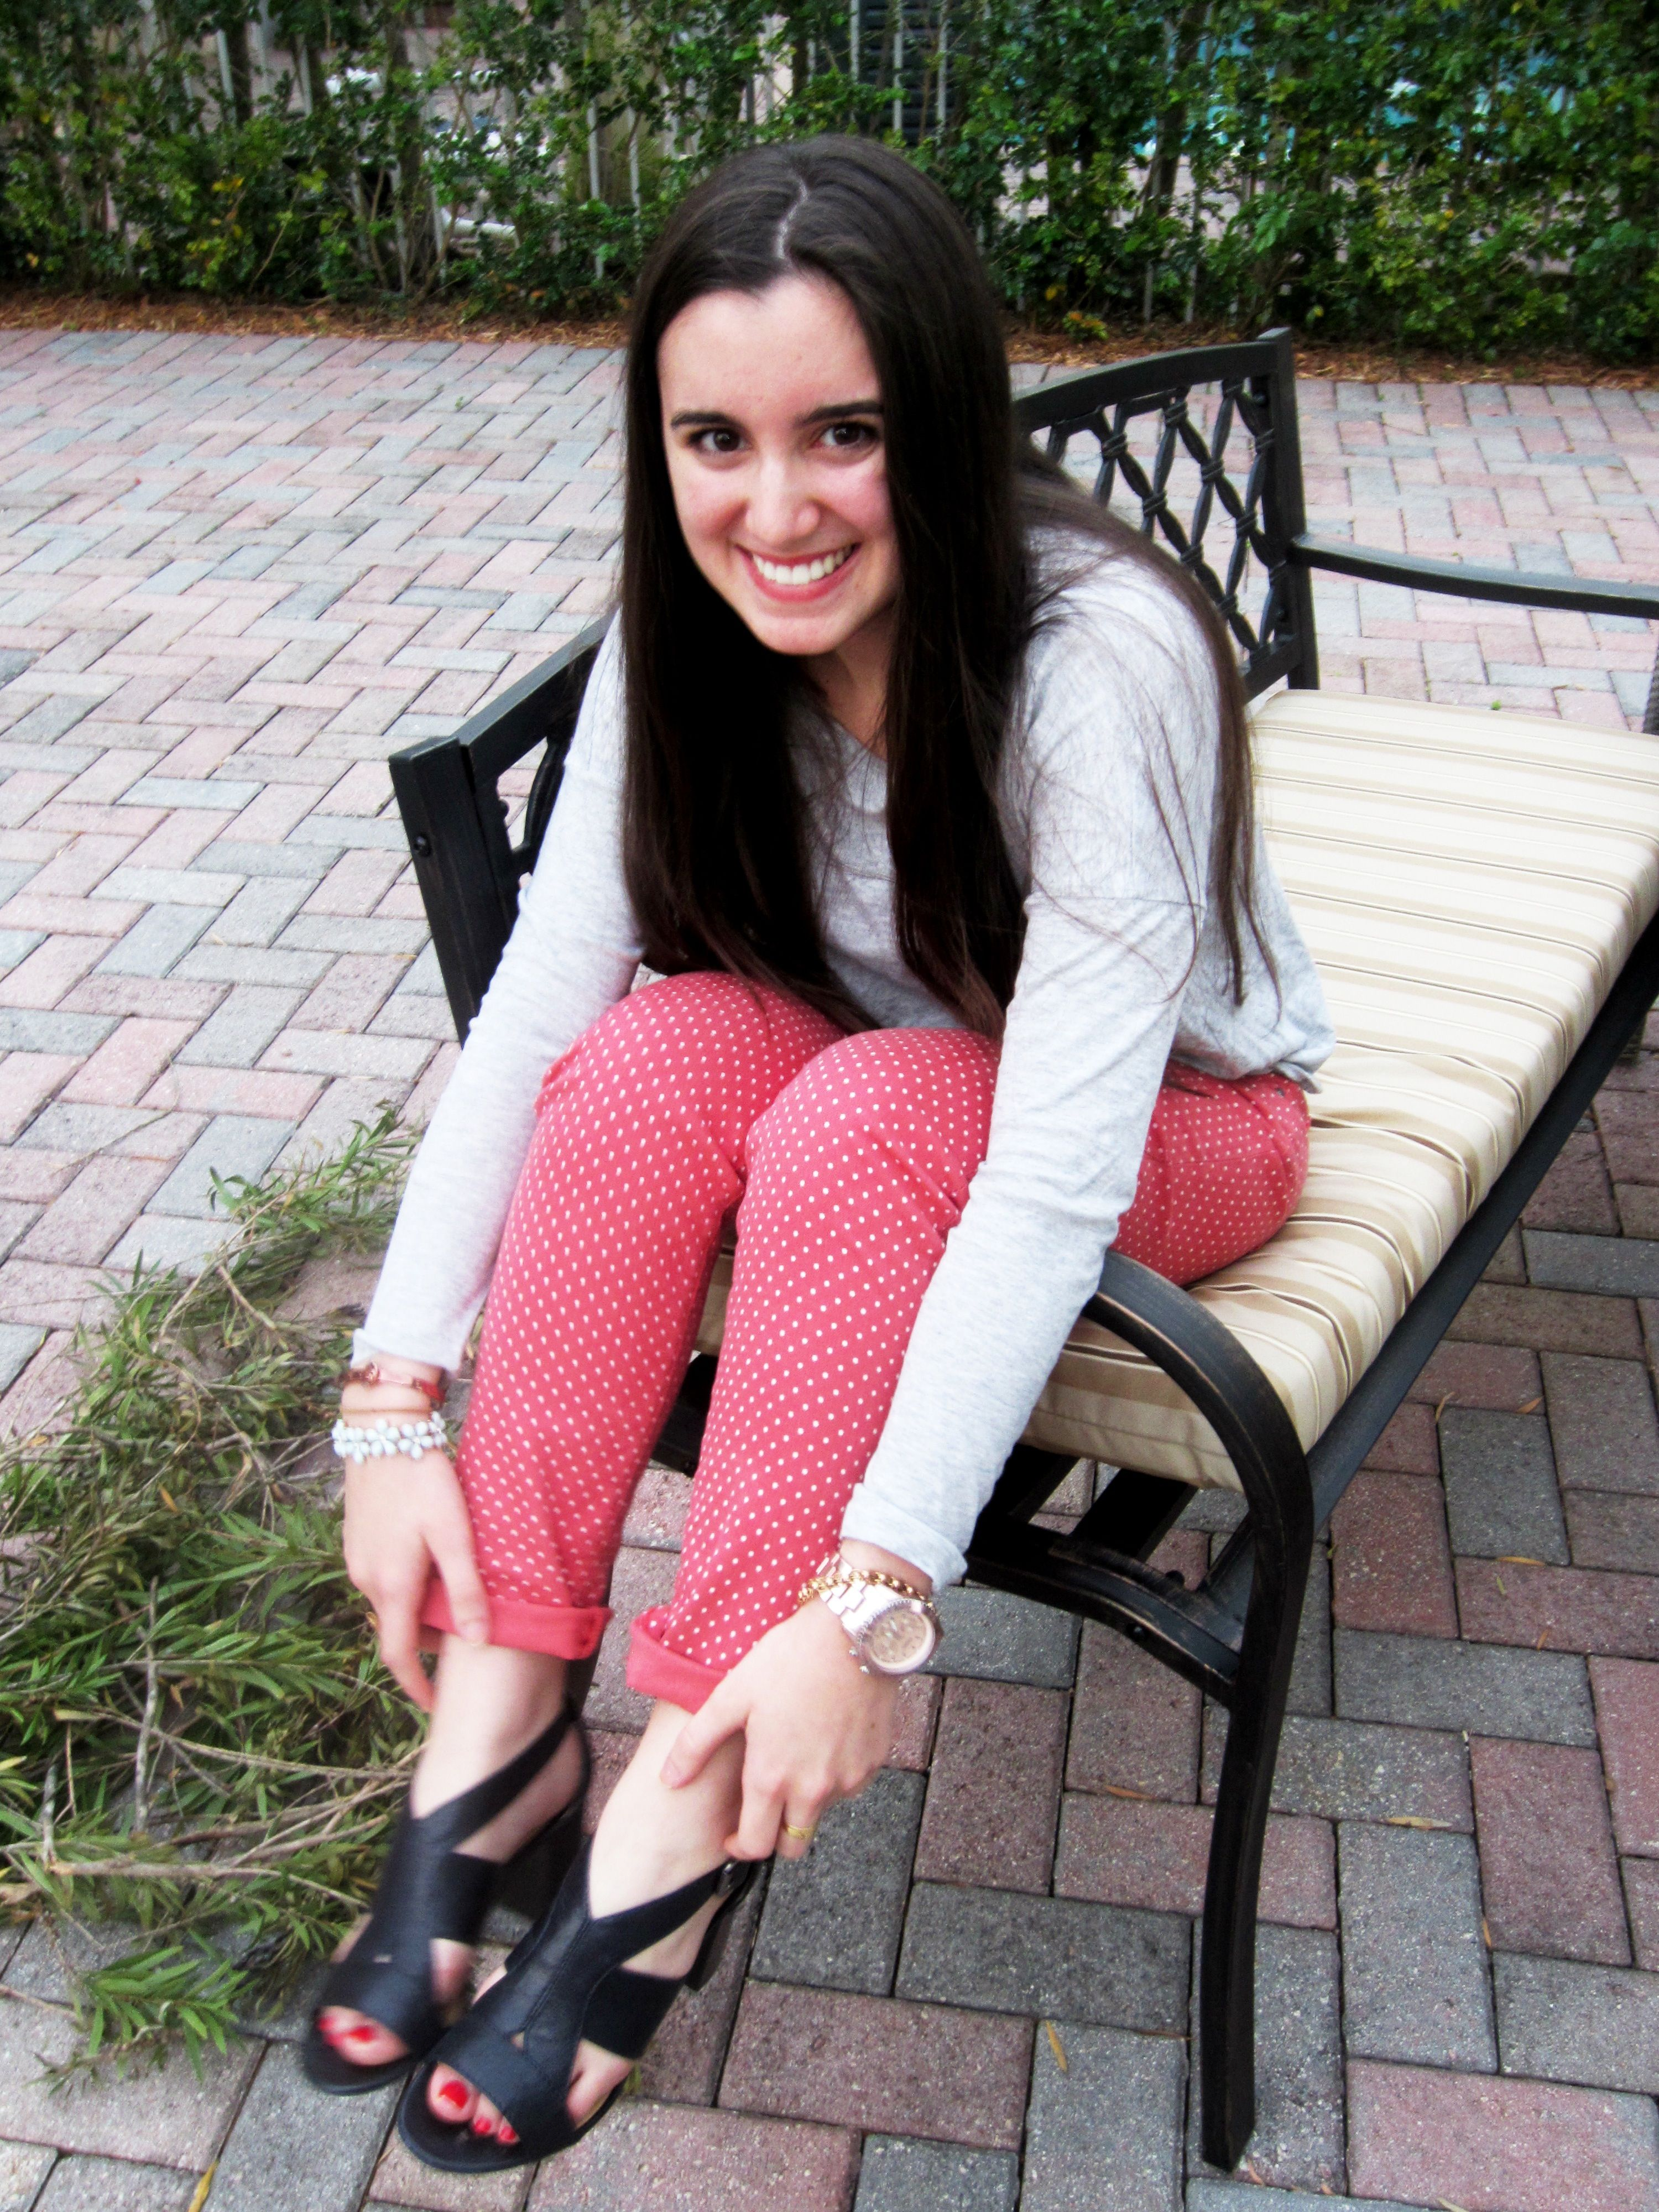 Red polka dotted jeans 3 style pinterest polka dot jeans red polka dotted jeans 3 sisterspd